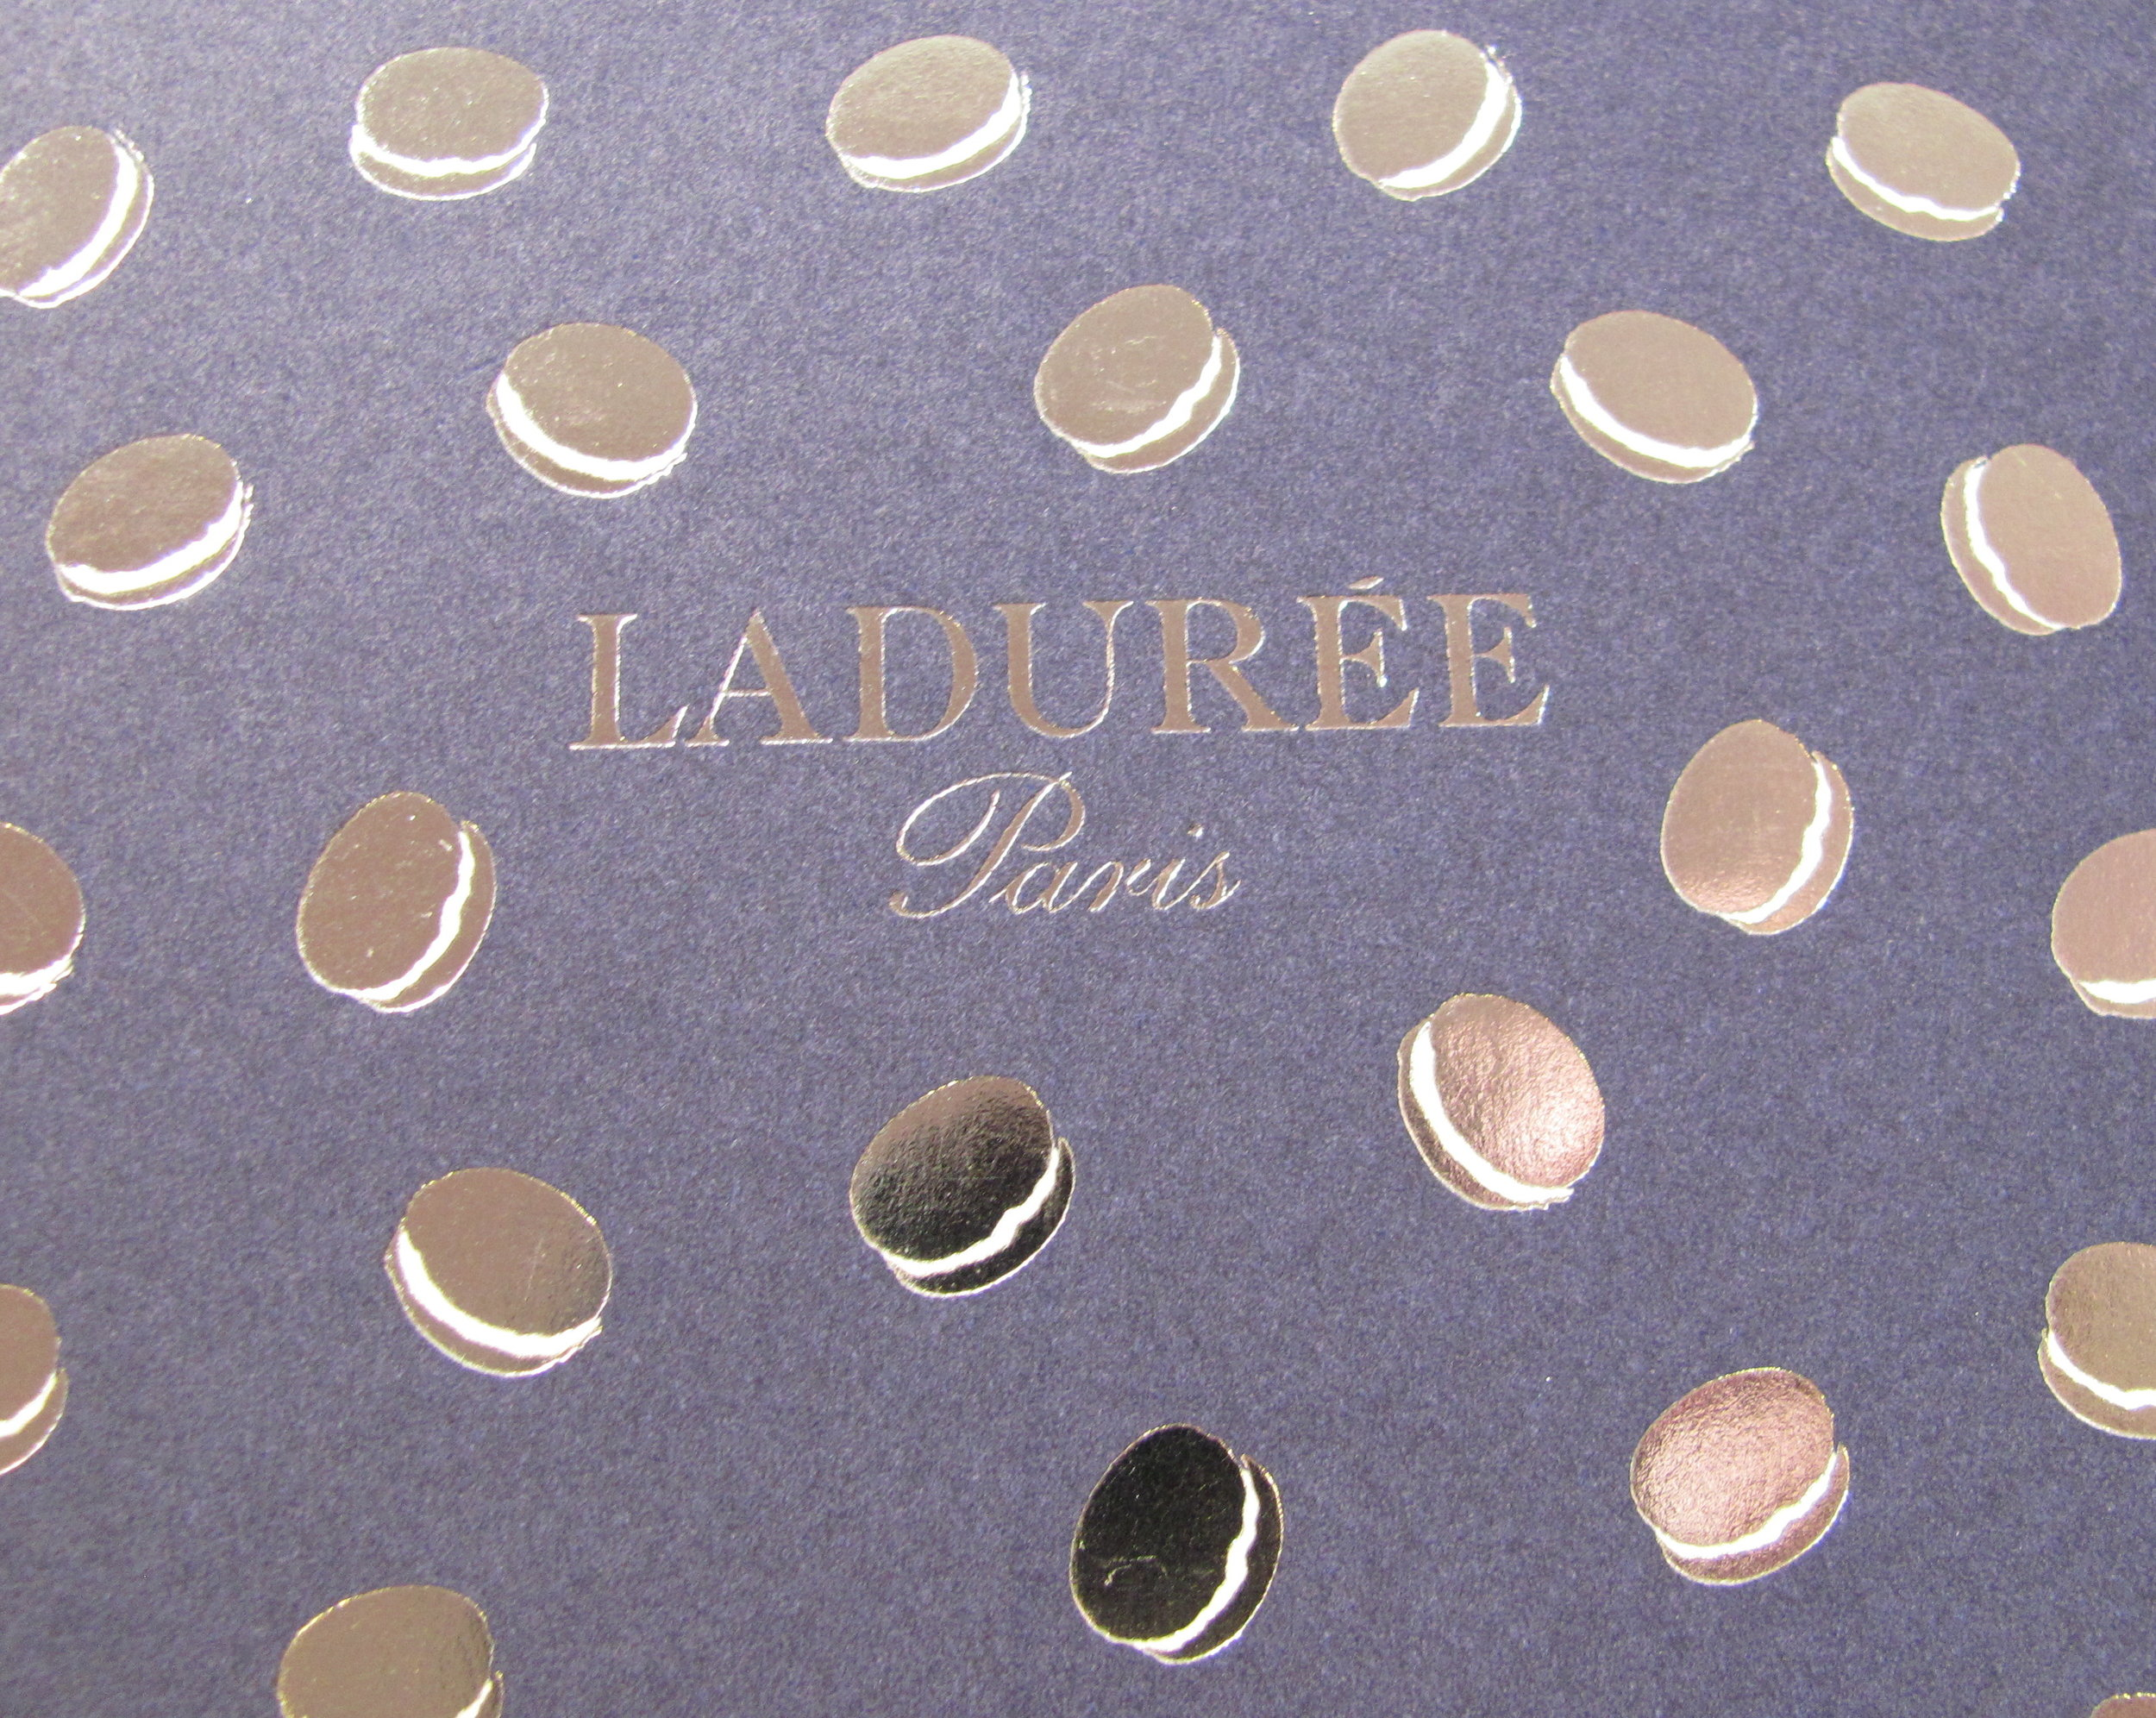 Even the Laduree boxes are gorgeous.